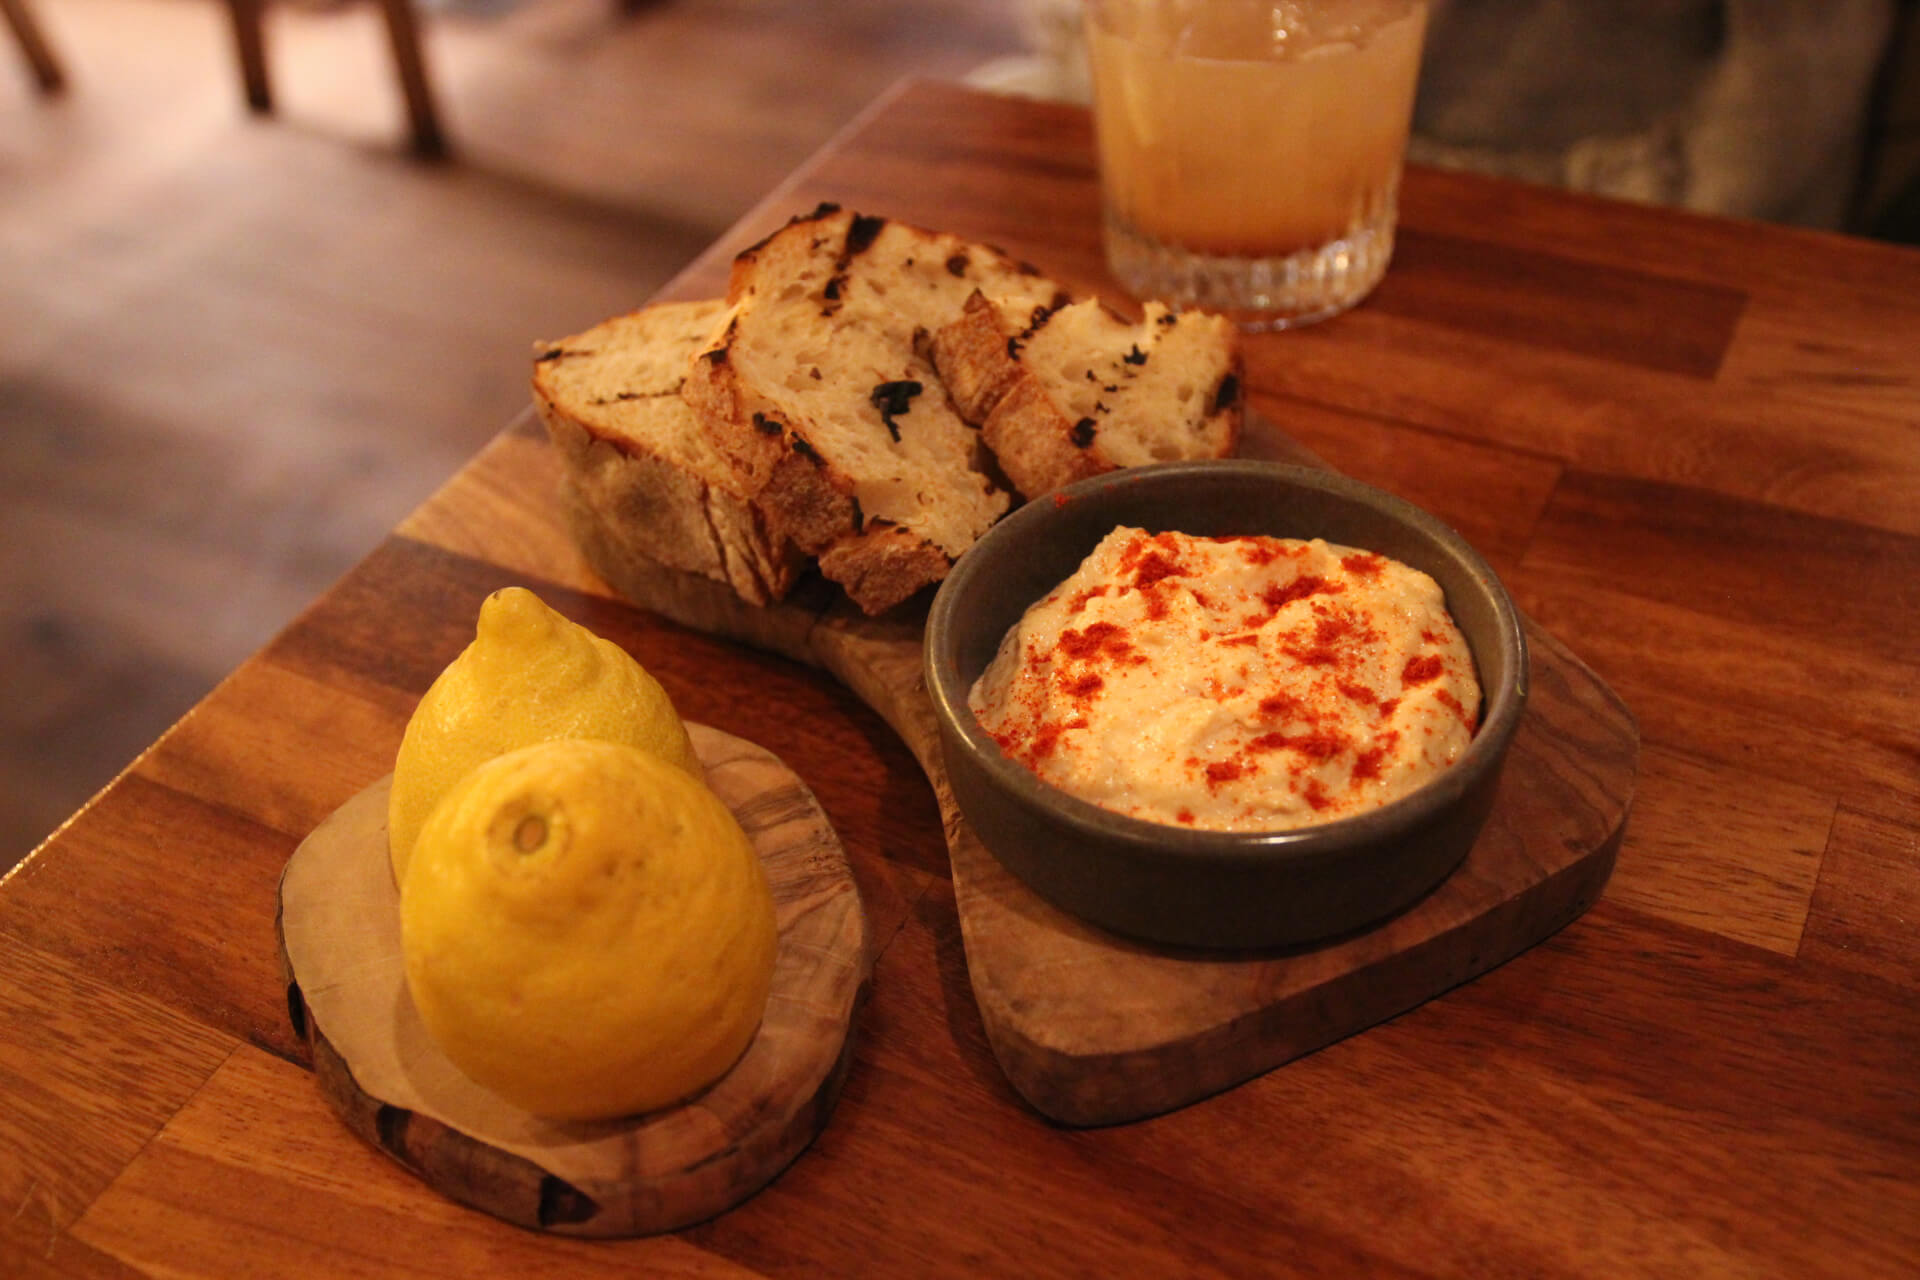 Taramasalata with crusty bread